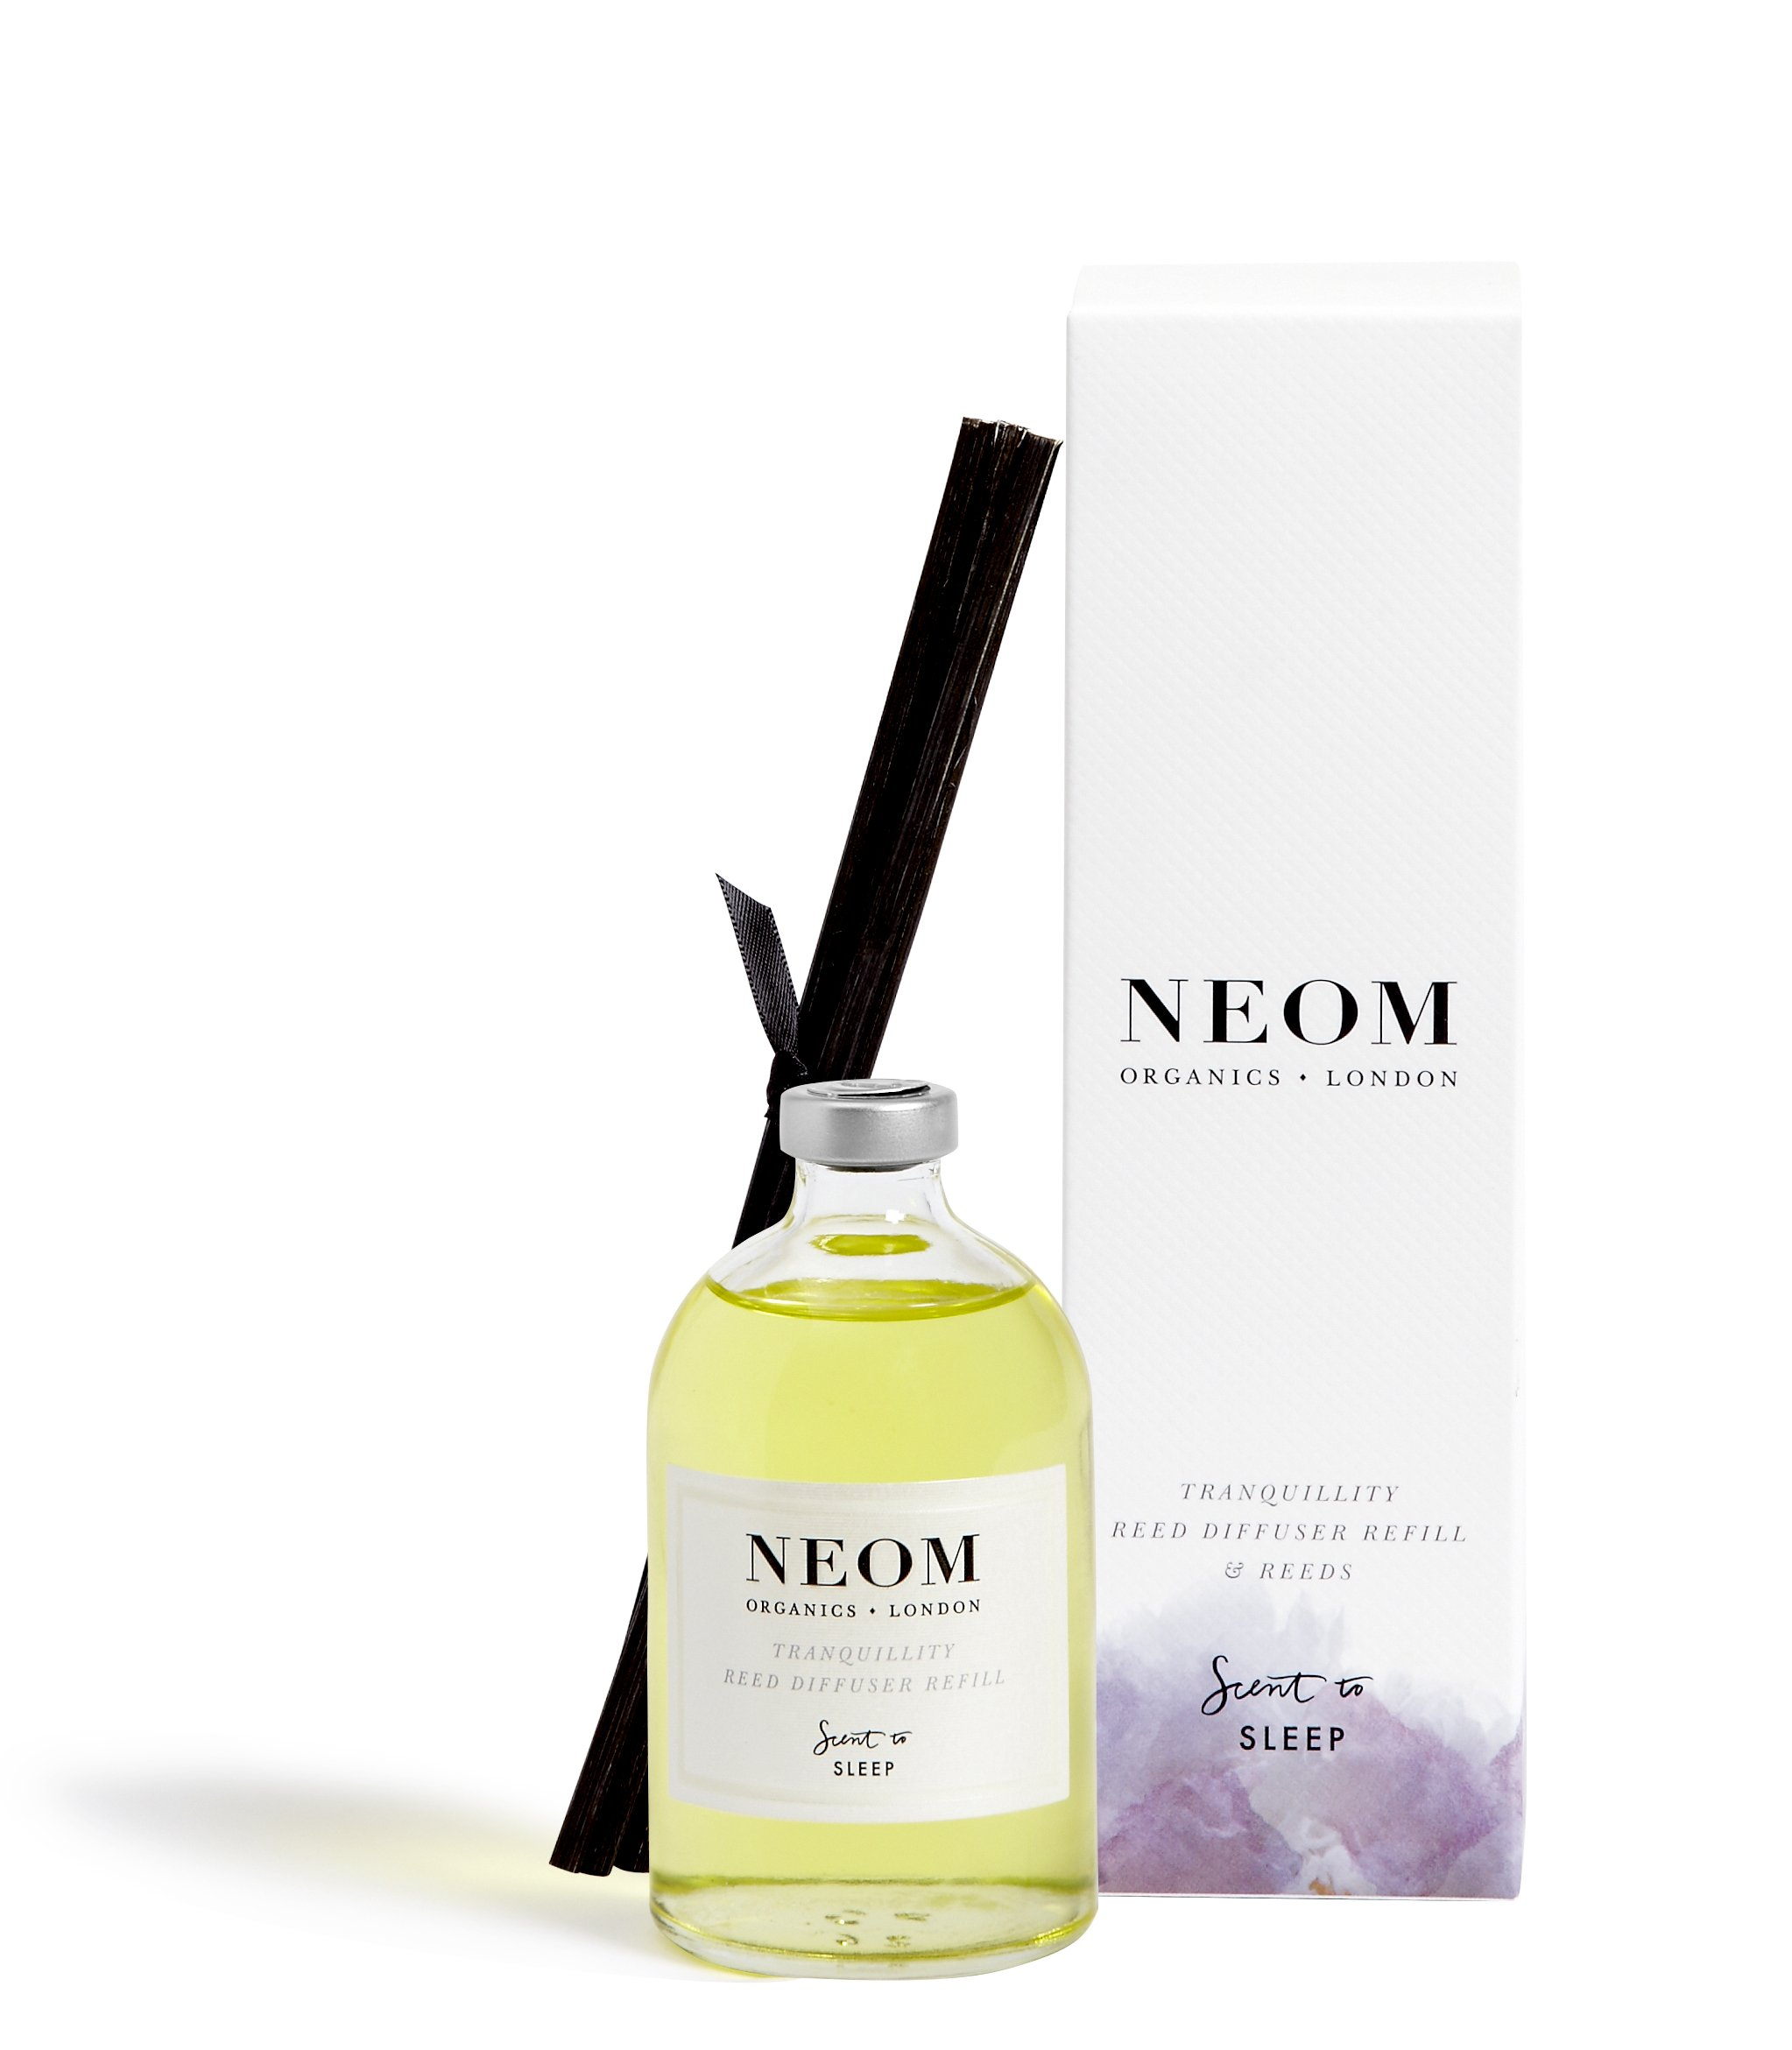 Neom Reed Tranquillity Refill Diffuser, 1 EA by Neom